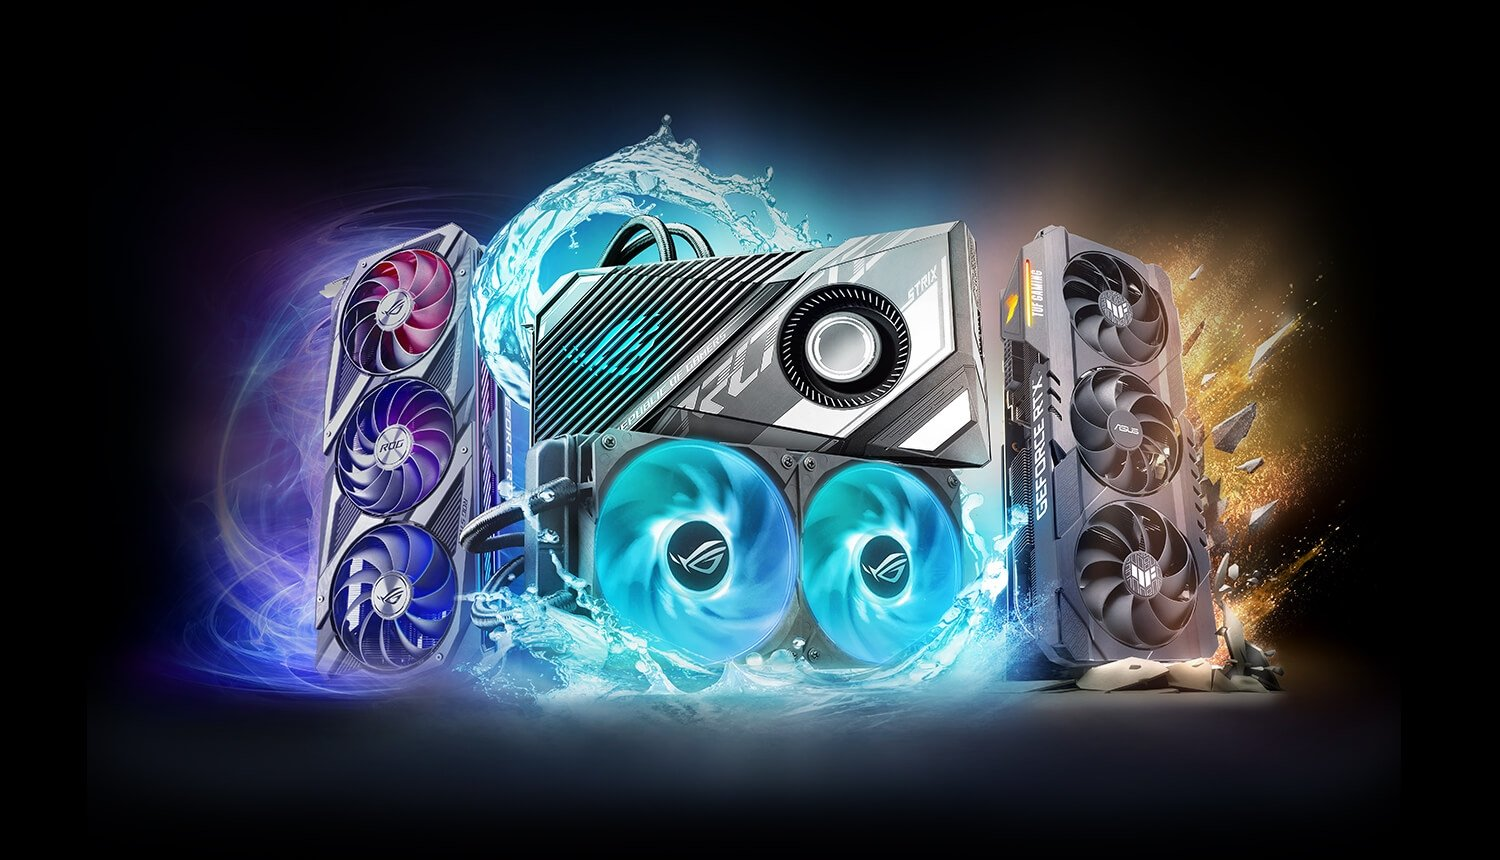 Asus Briefly Shows off RTX 3070 Card